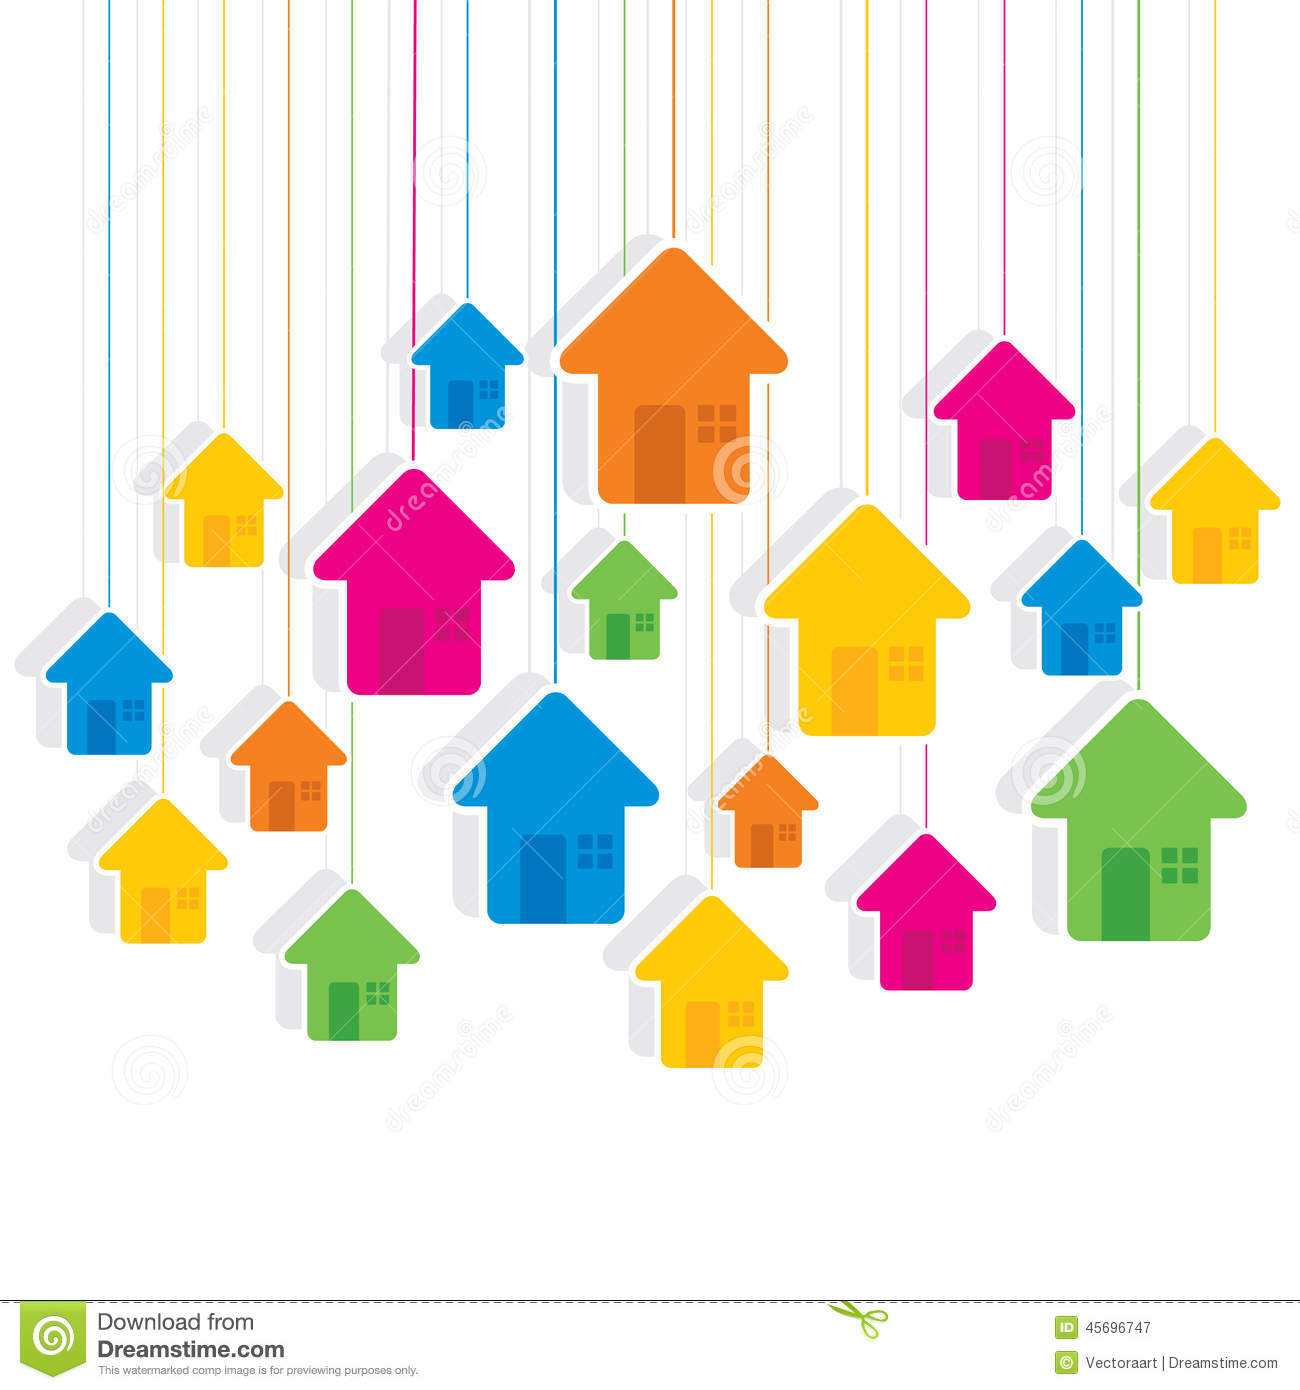 Colorful hanging house pattern background design stock for House pattern